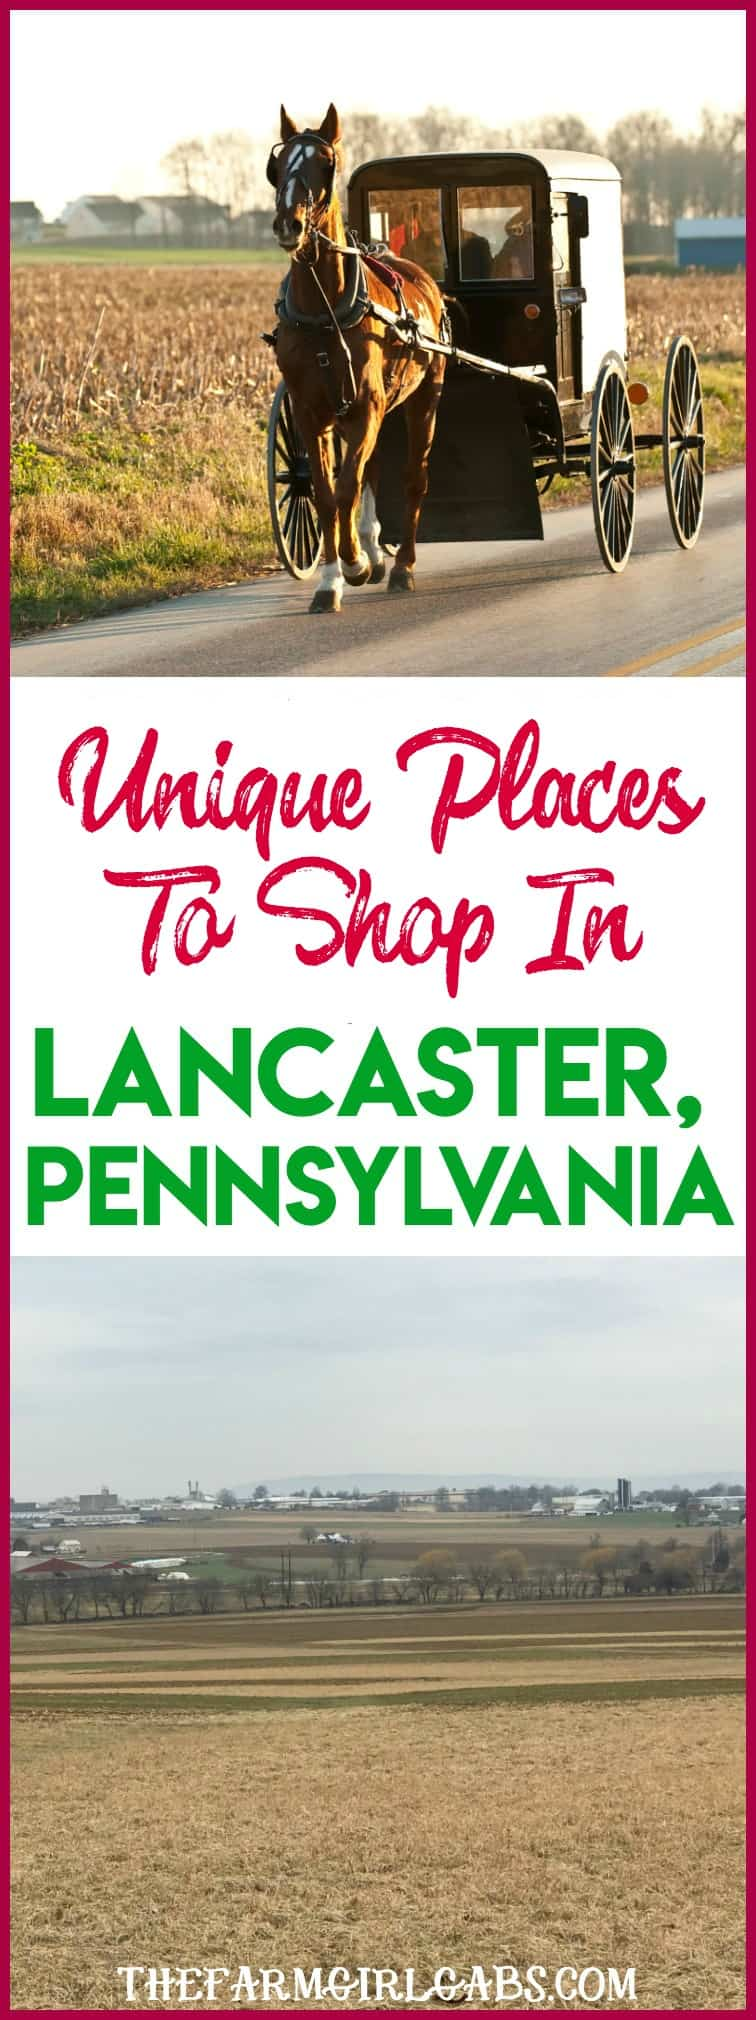 Unique Places To Shop In Lancaster County, PA #DriveMazda #Ad #LancasterPA #PADutch #travel